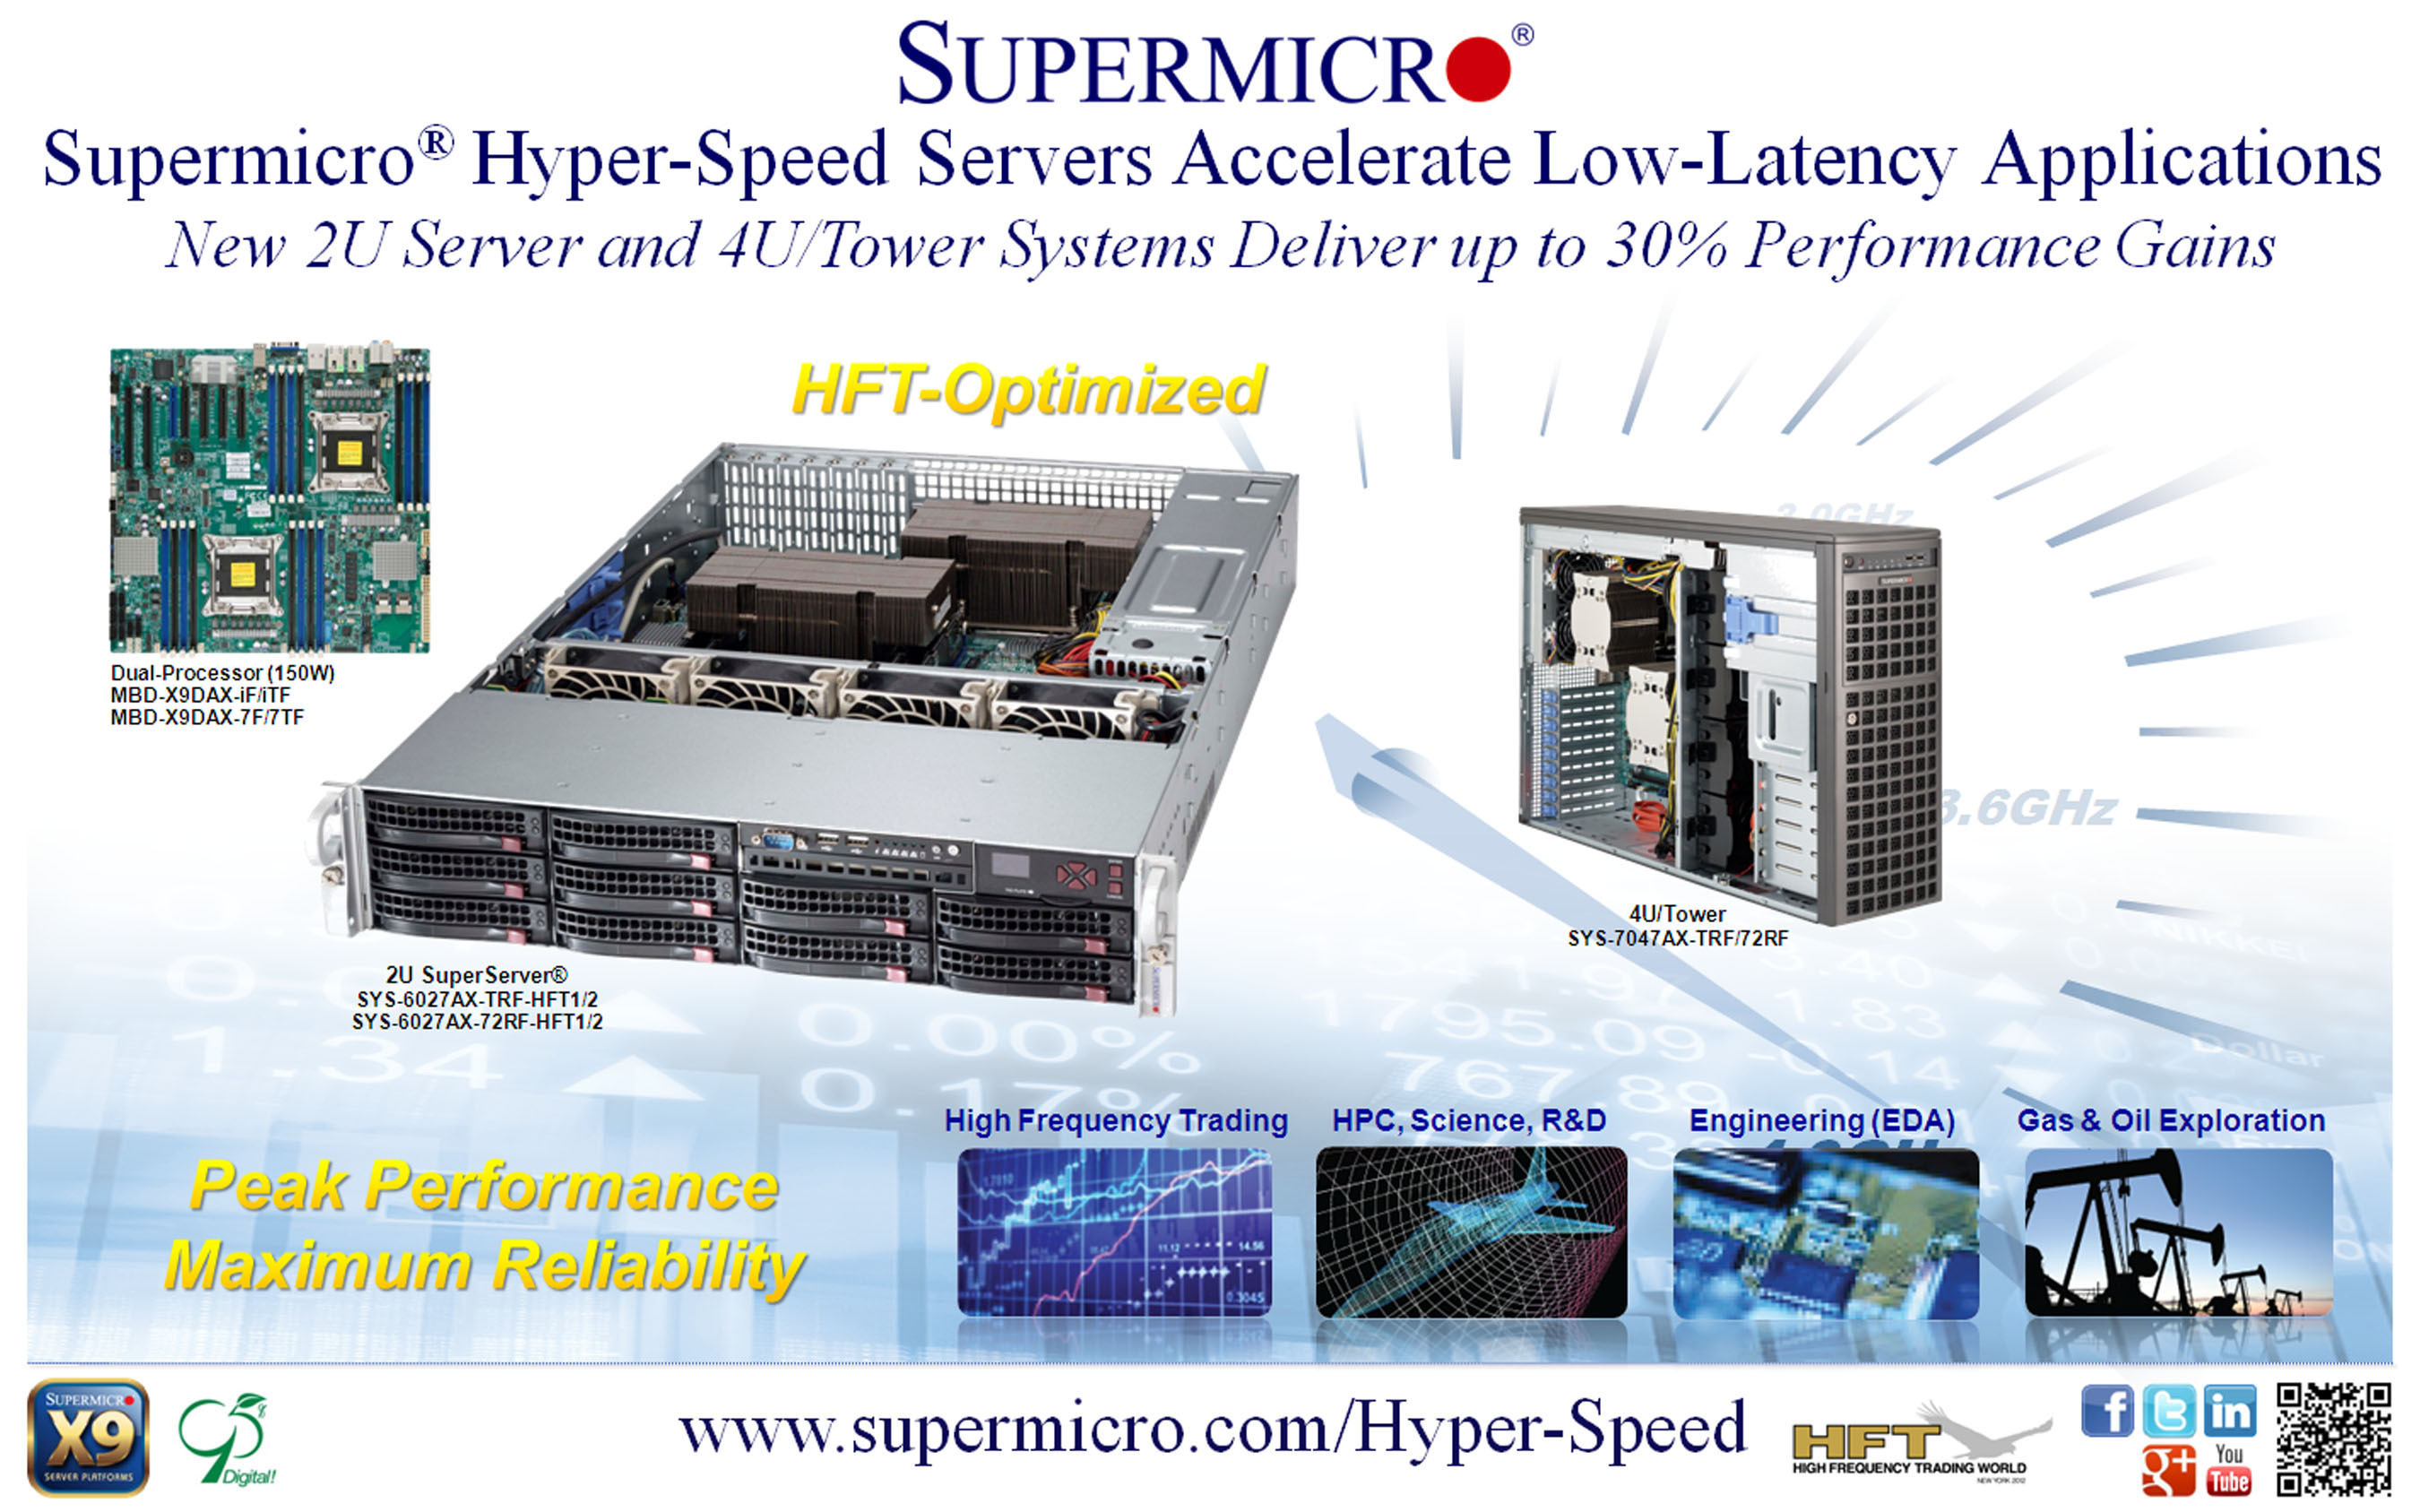 Supermicro(R) HFT-Optimized Hyper-Speed Servers Accelerate Low-Latency Applications.  (PRNewsFoto/Super Micro ...